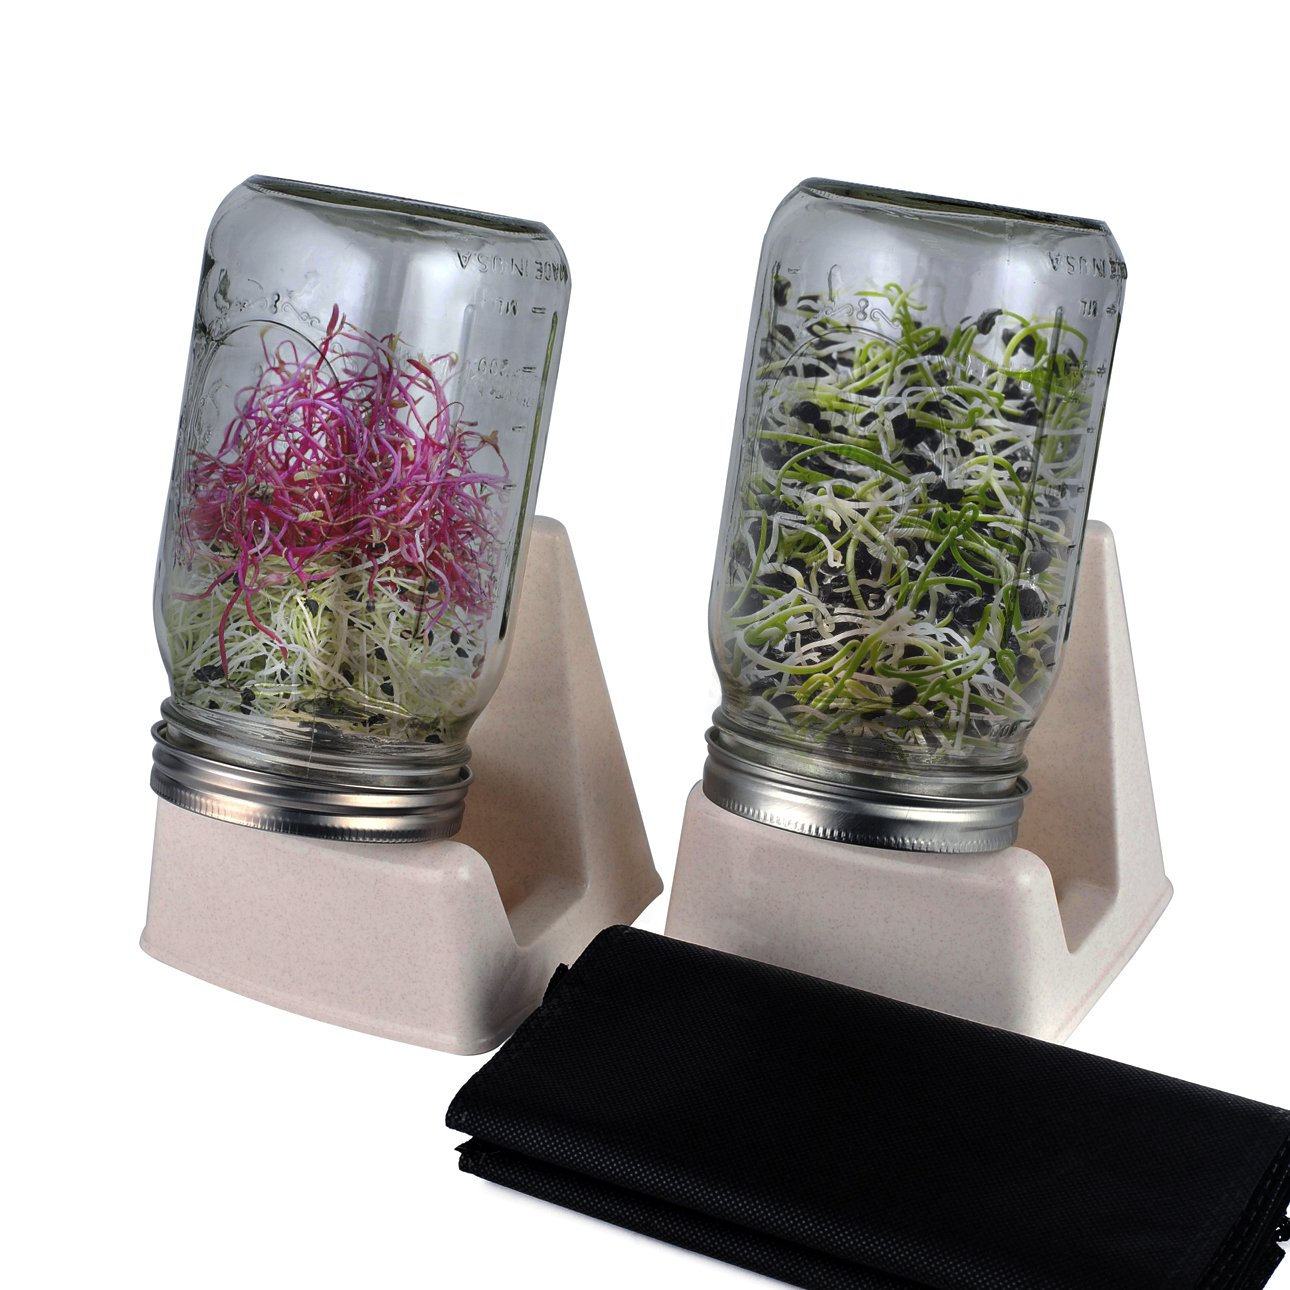 CASAFE+ Sprouting Kit - 2 In 1 Stand and Stainless Steel Lid For Wide Mouth Ball or Kerr Mason Jars (2 Set by CASAFE+